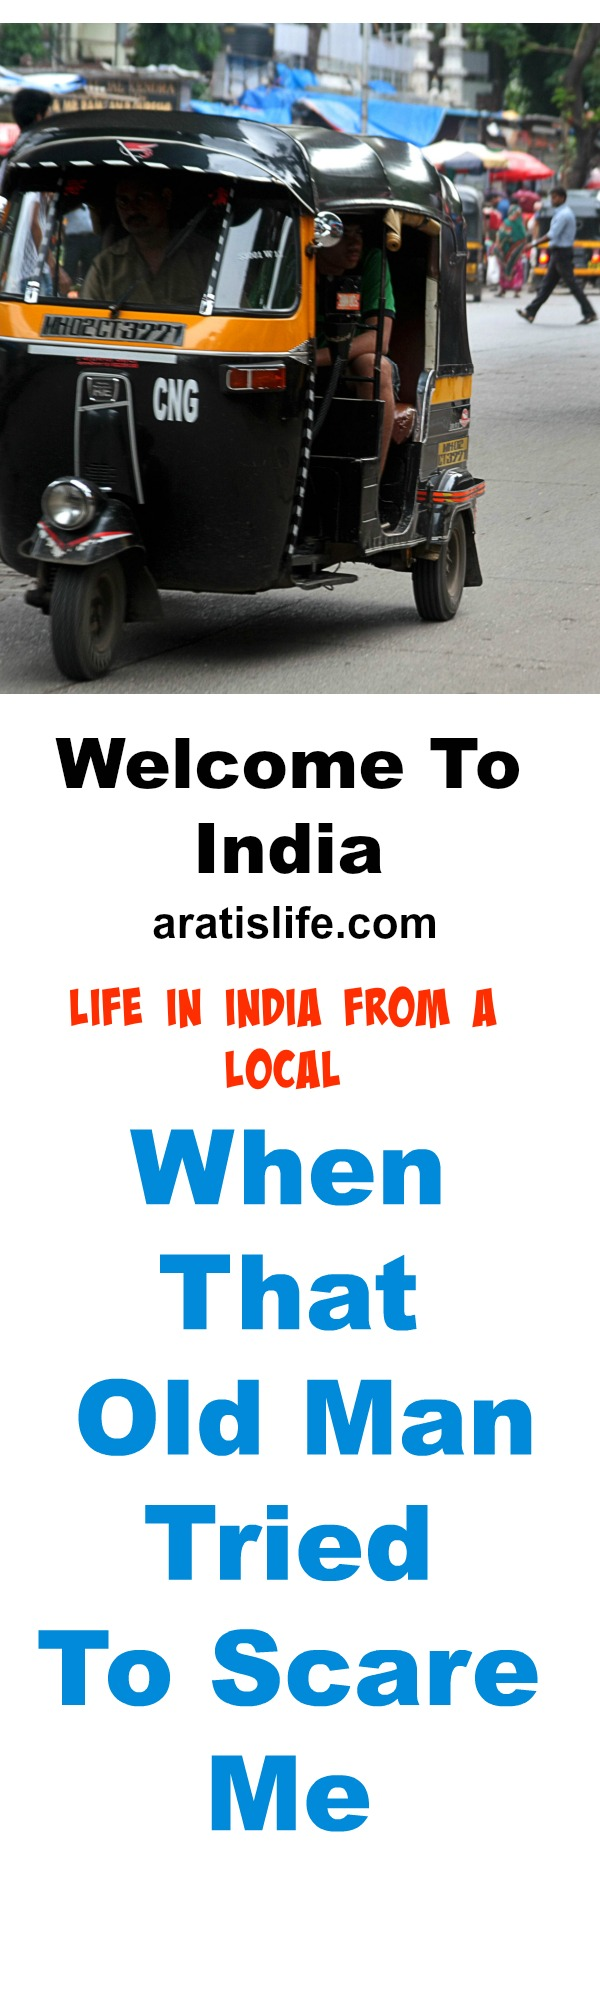 india travel visit tour tourism